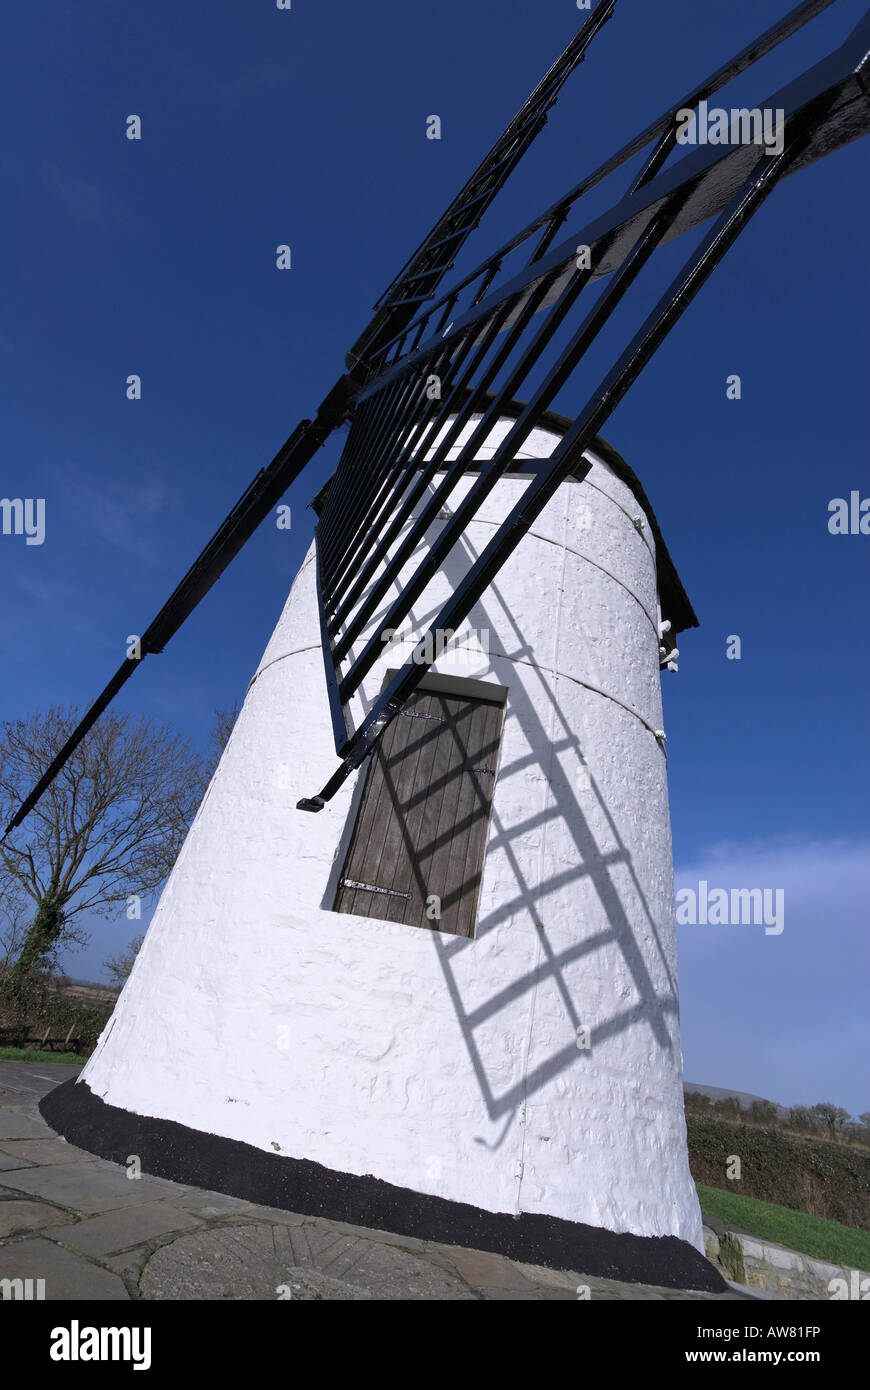 white and black Windmill - Stock Image